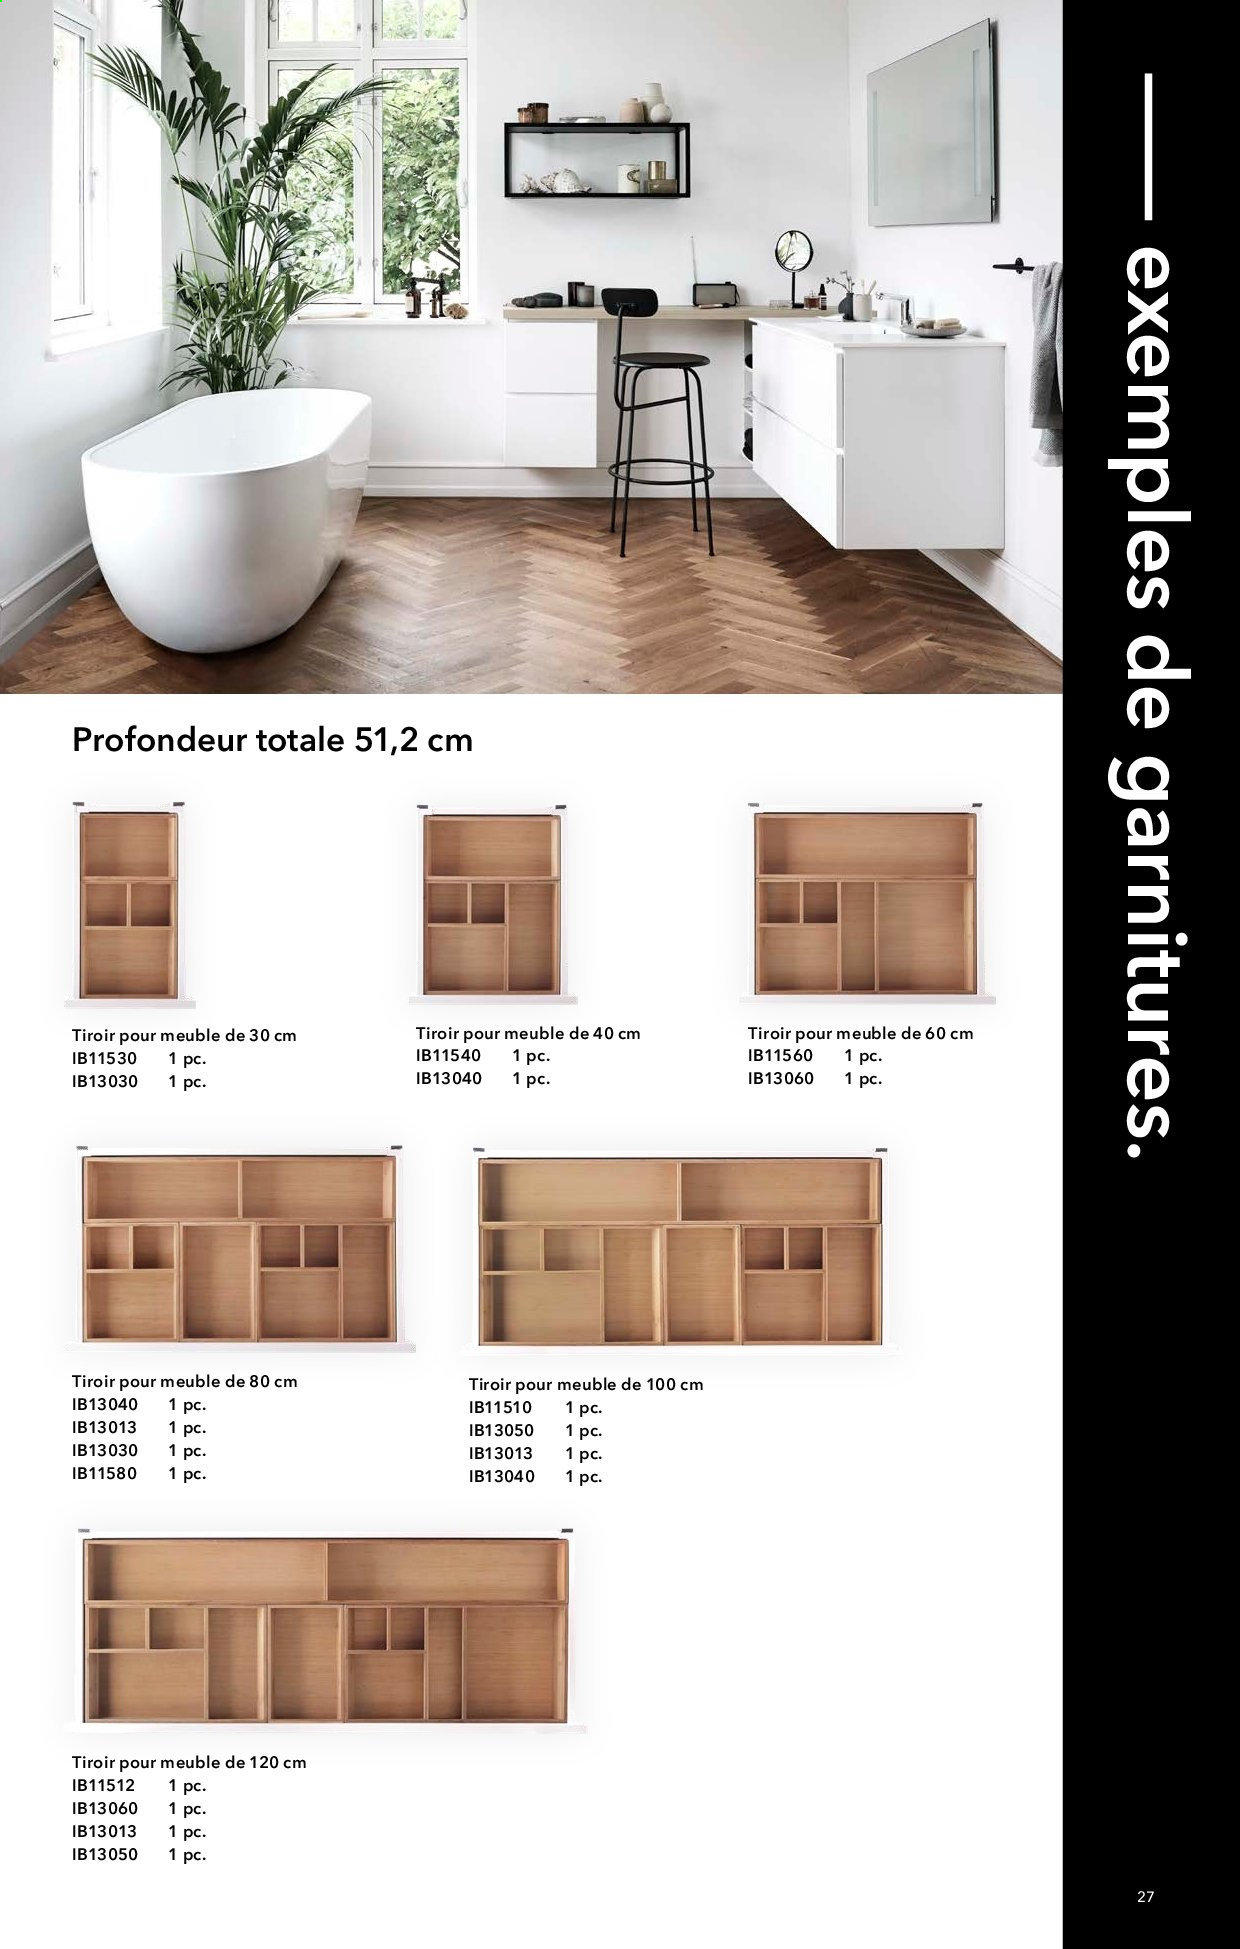 Catalogue Kvik. Page 27.